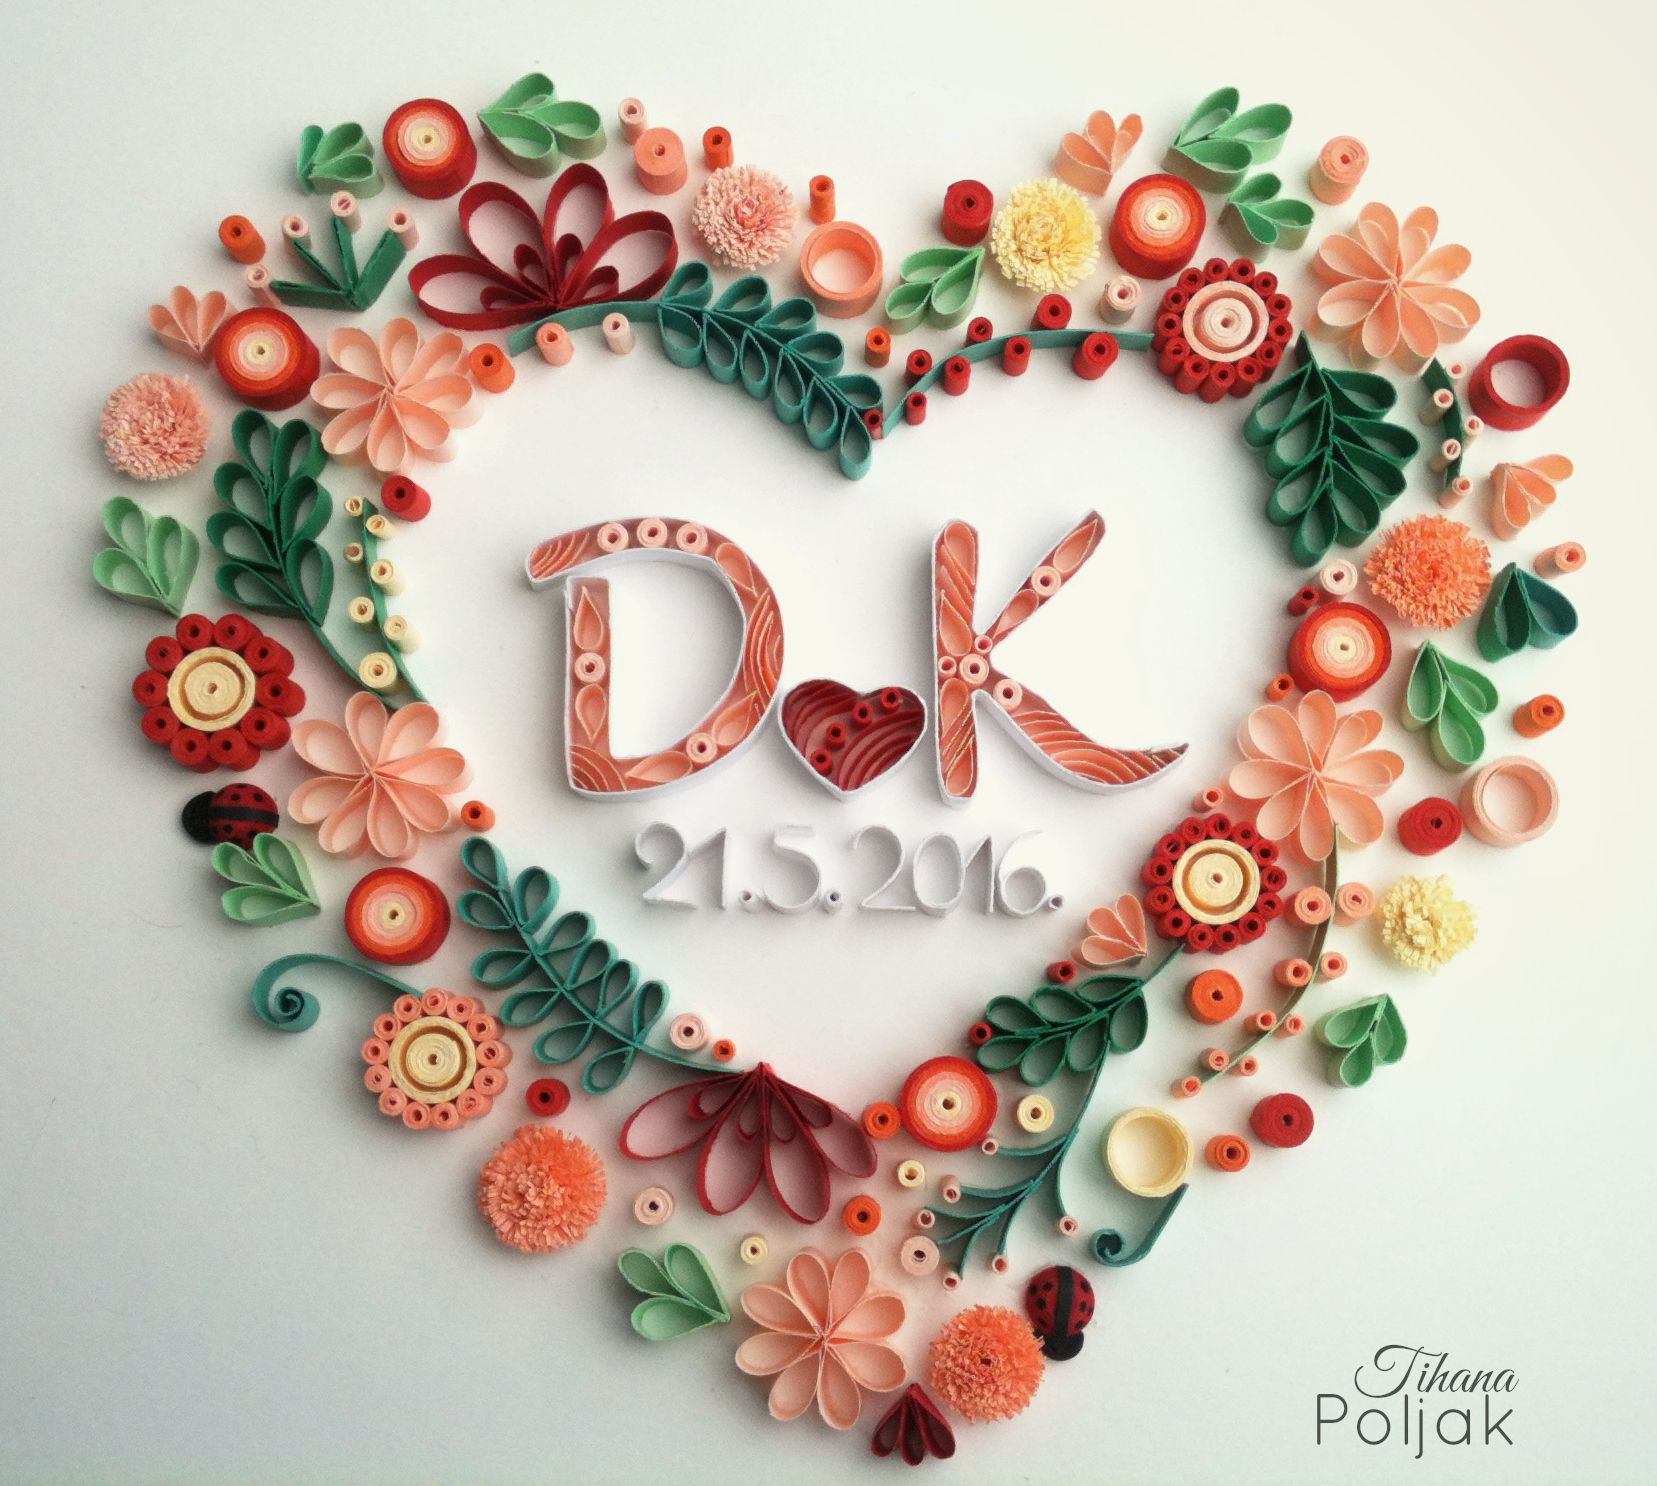 Quilled wreath quilled heart quilled letters quilling for Paper quilling designs